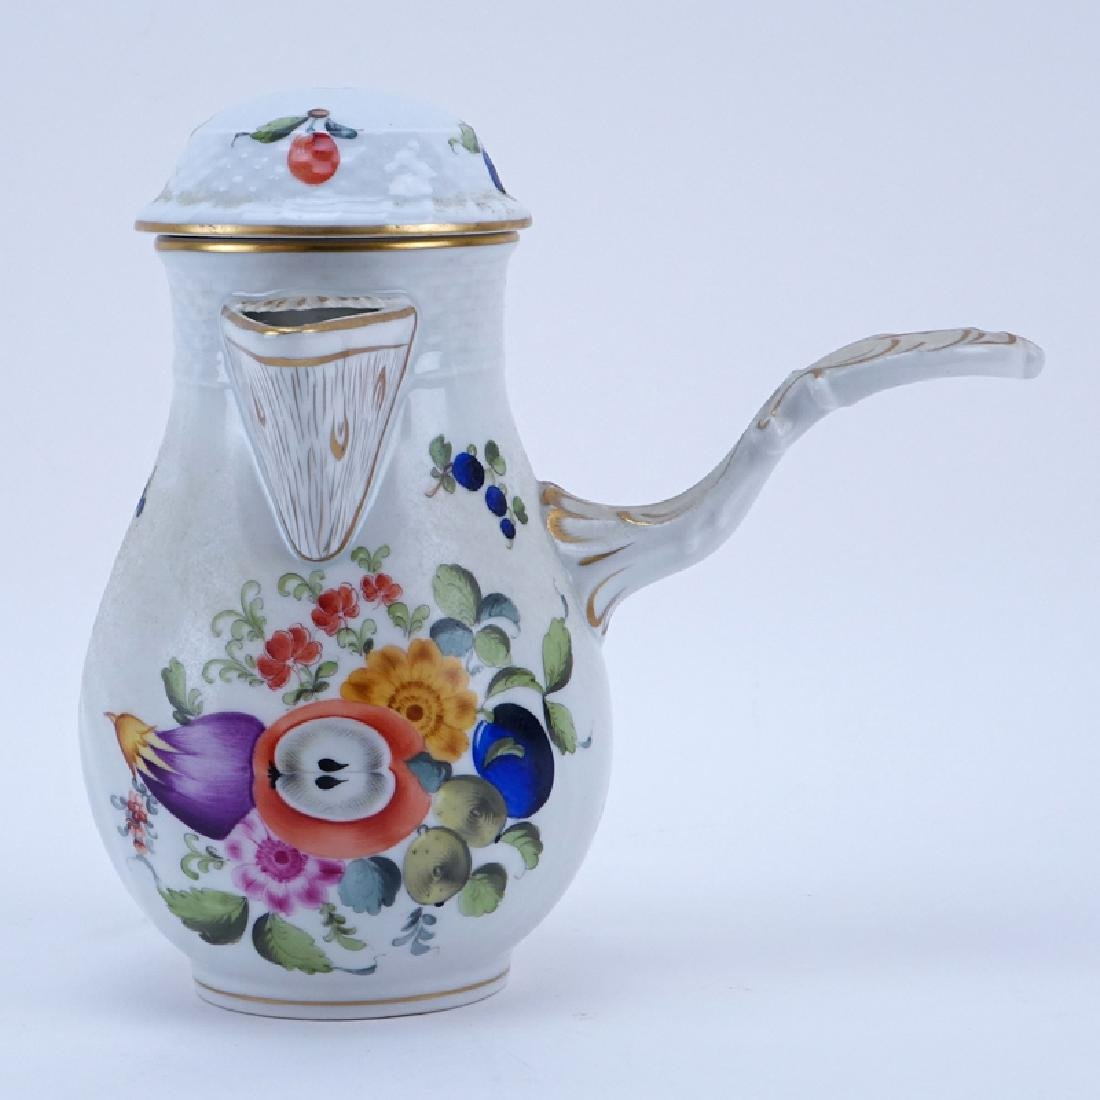 Herend Porcelain Fruits and Flowers Chocolate Pot.